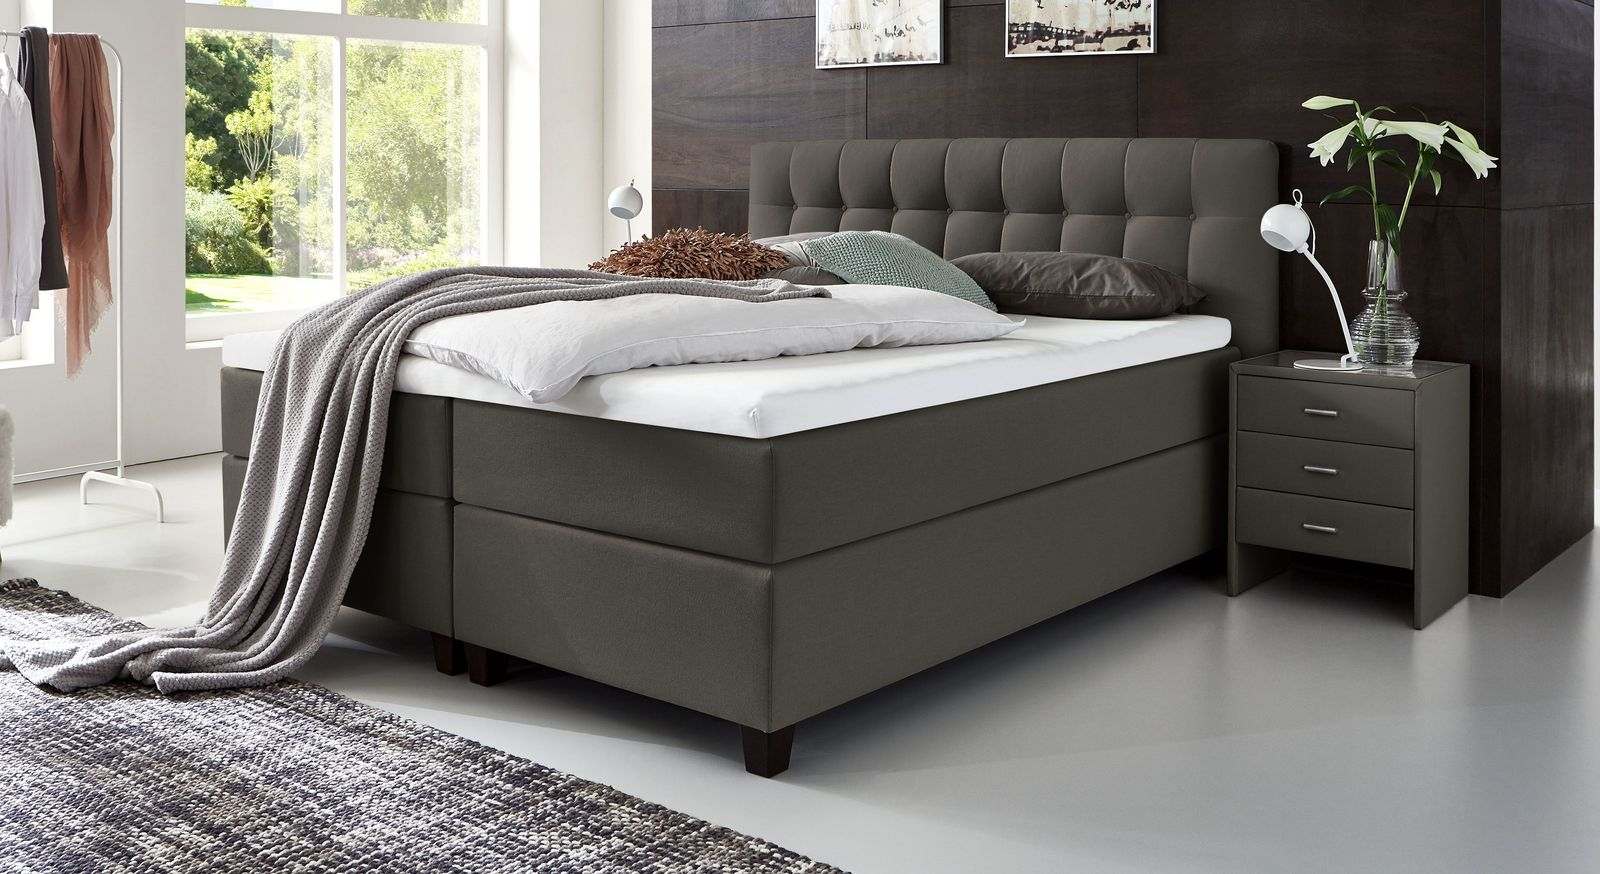 66 cm hohes Boxspringbett Luciano aus Webstoff in Anthrazit